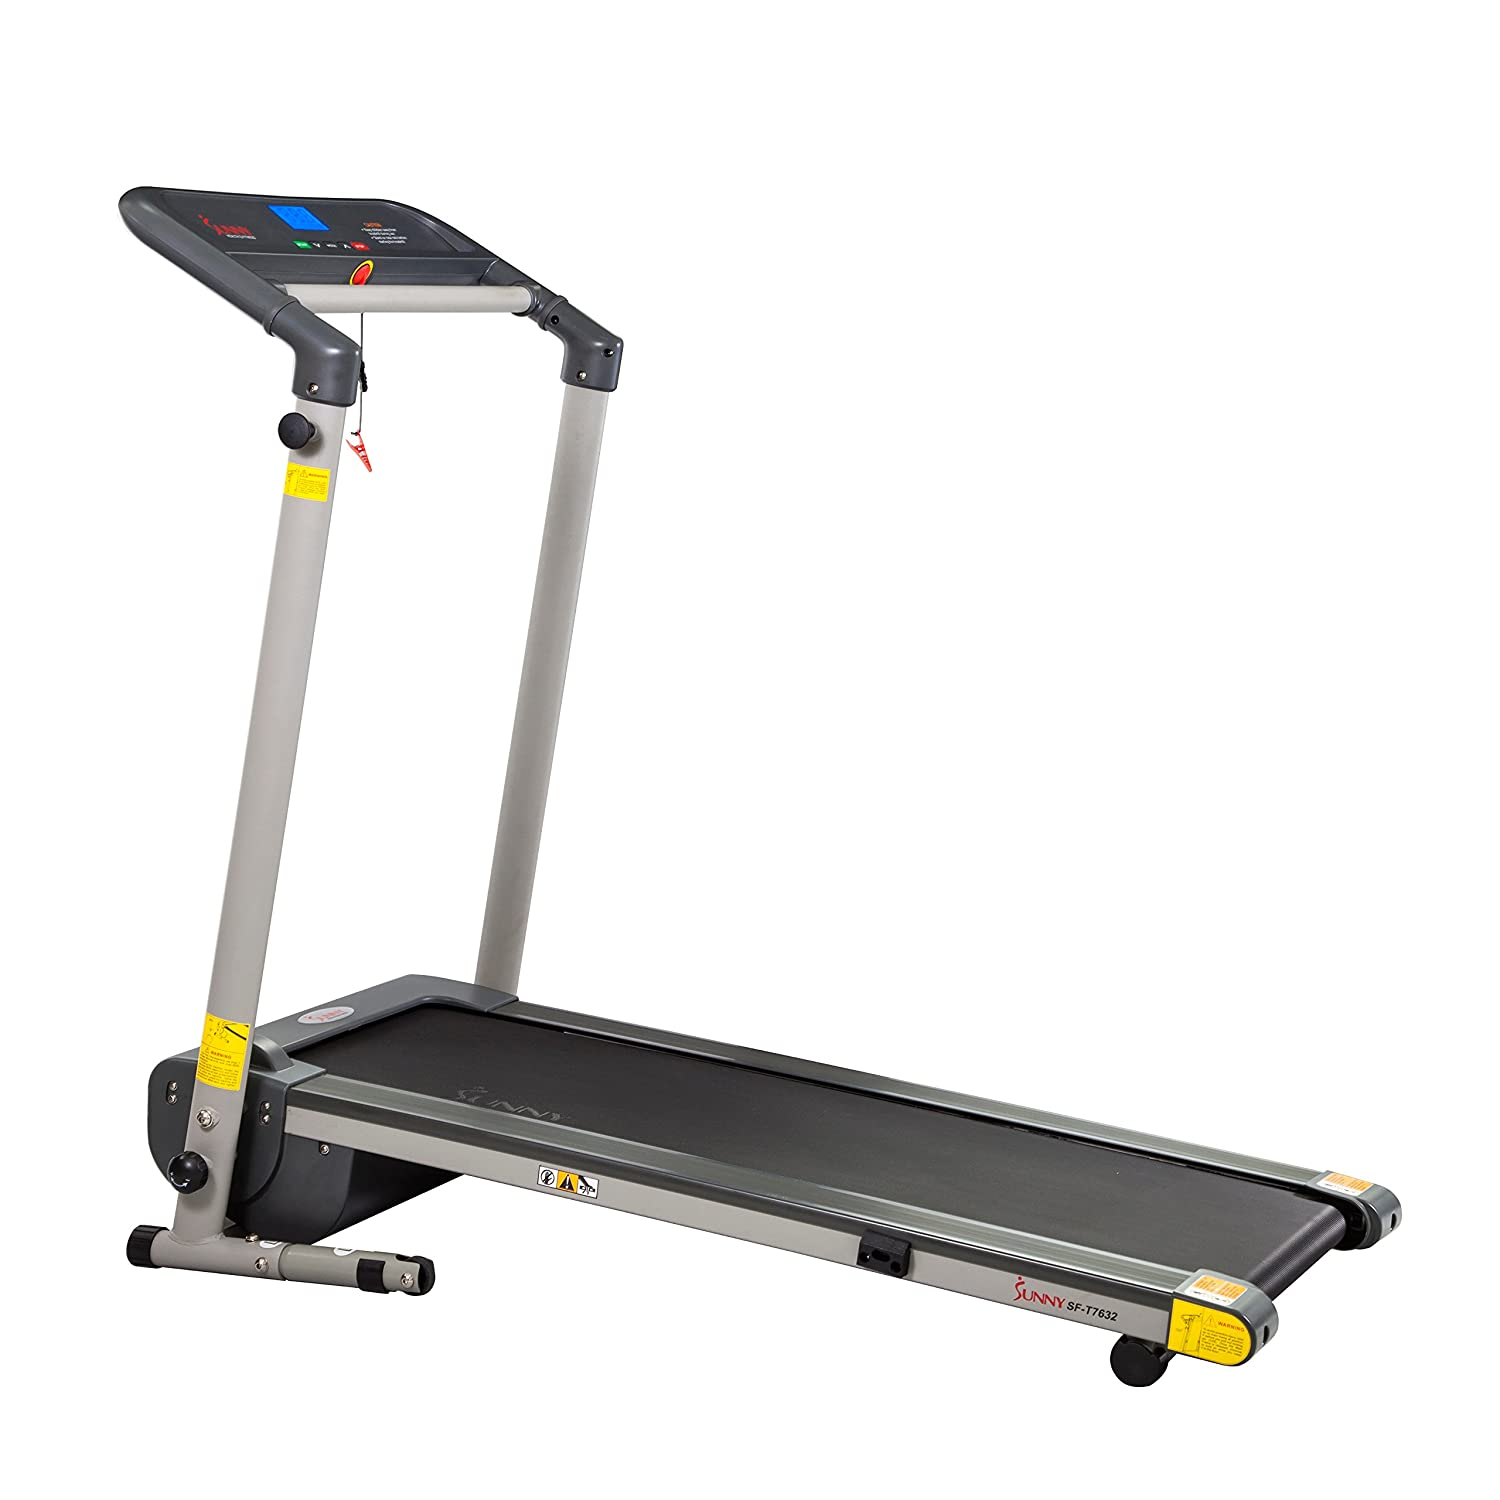 Sunny Health & Fitness SF-T7632 Treadmill Review